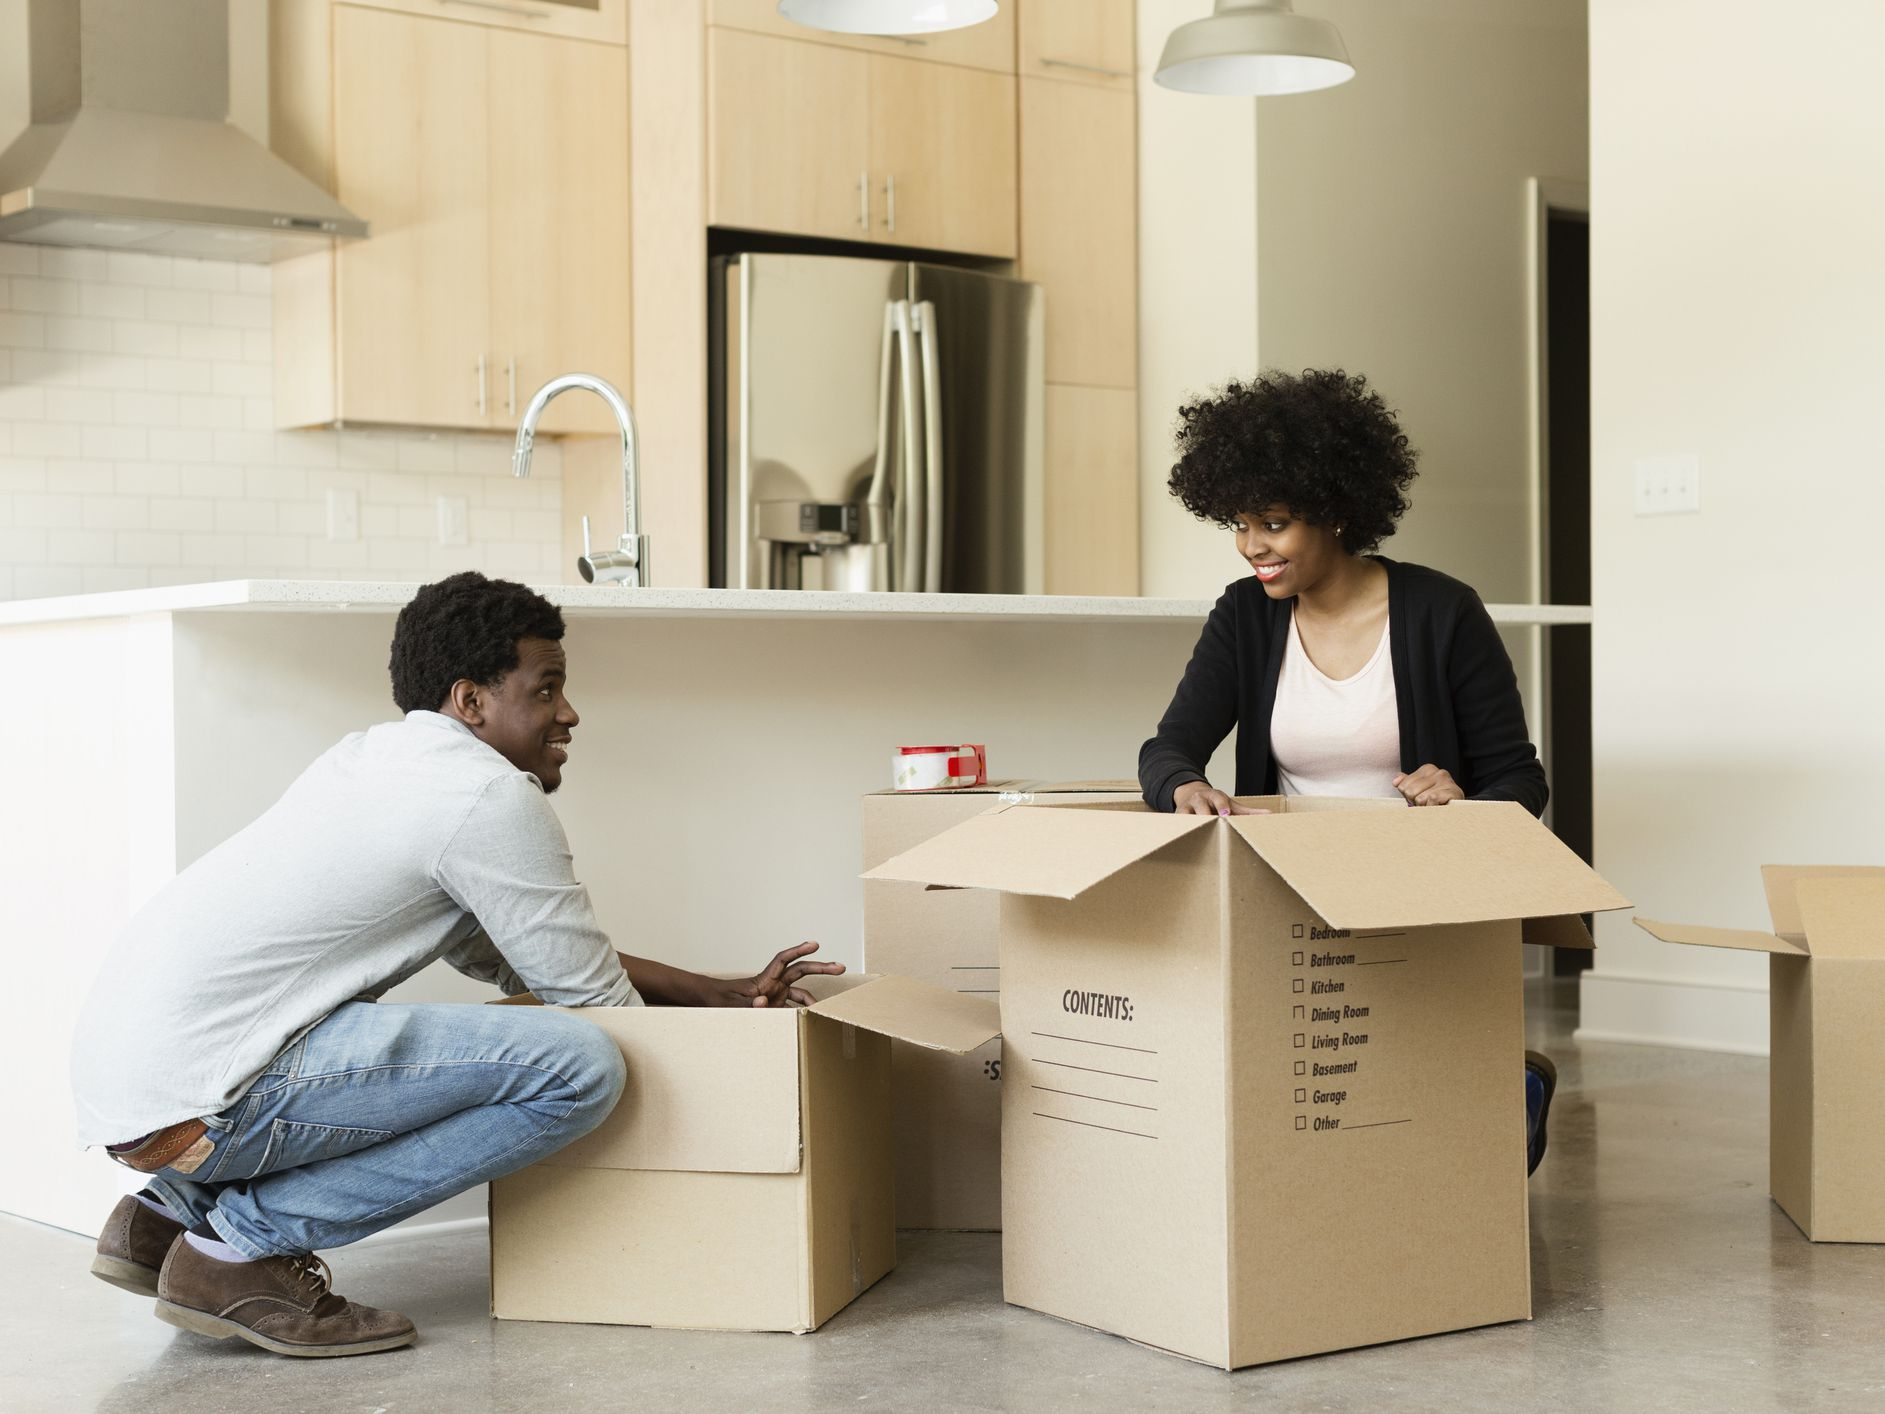 Best Places to Find Tenants for Your Rental